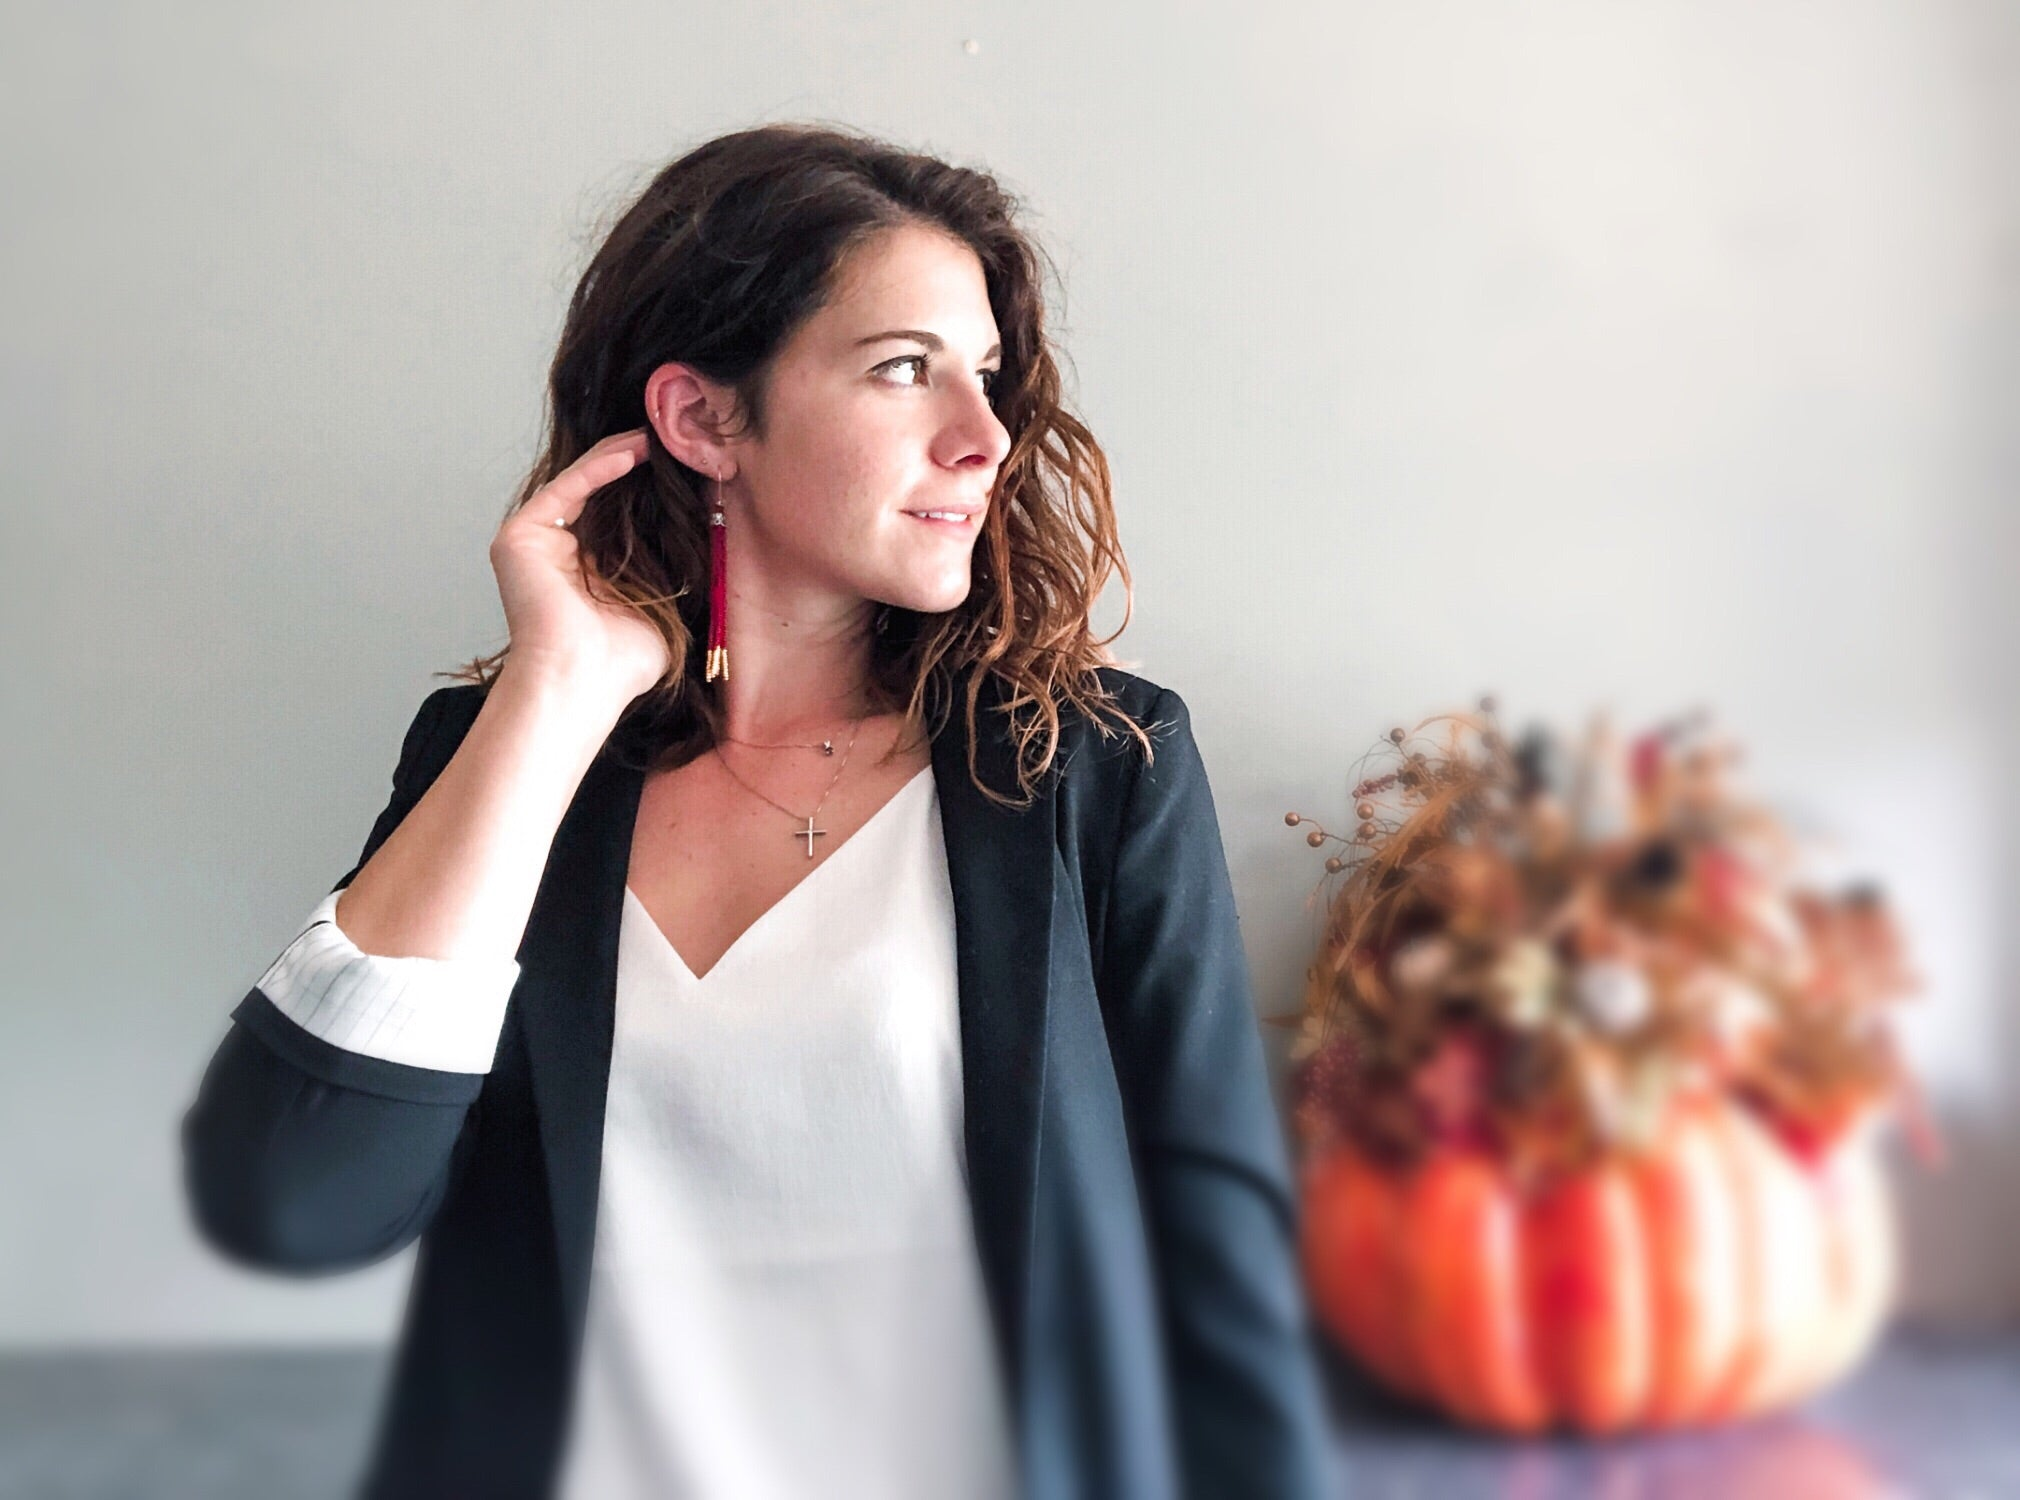 Cait wearing the sweater weather dip earrings, a black blazer and white shirt